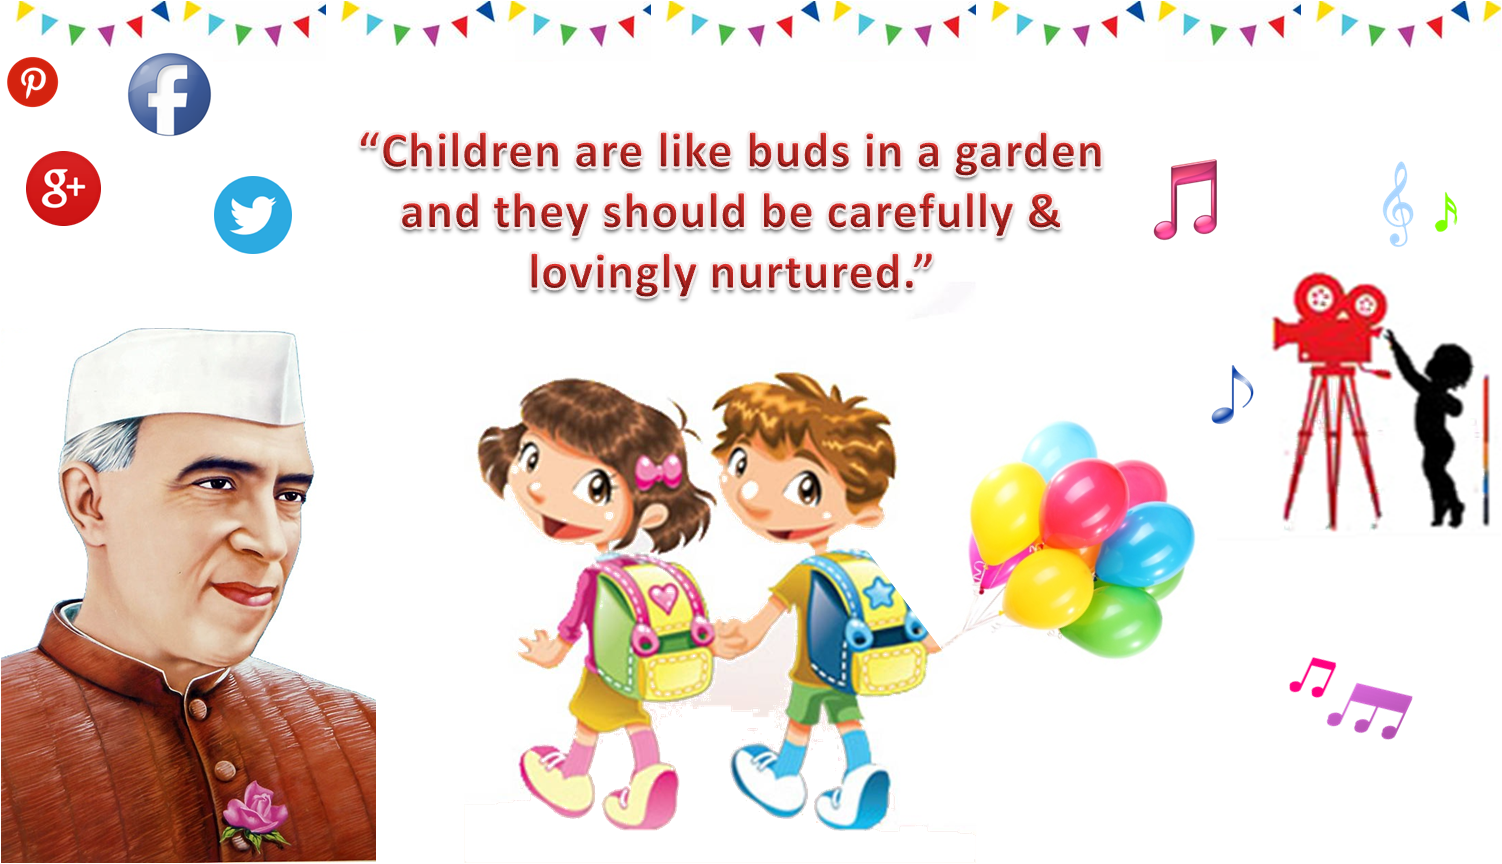 childrens day in india Latest children's day news, photos, blogposts, videos and wallpapers explore children's day profile at times of india.